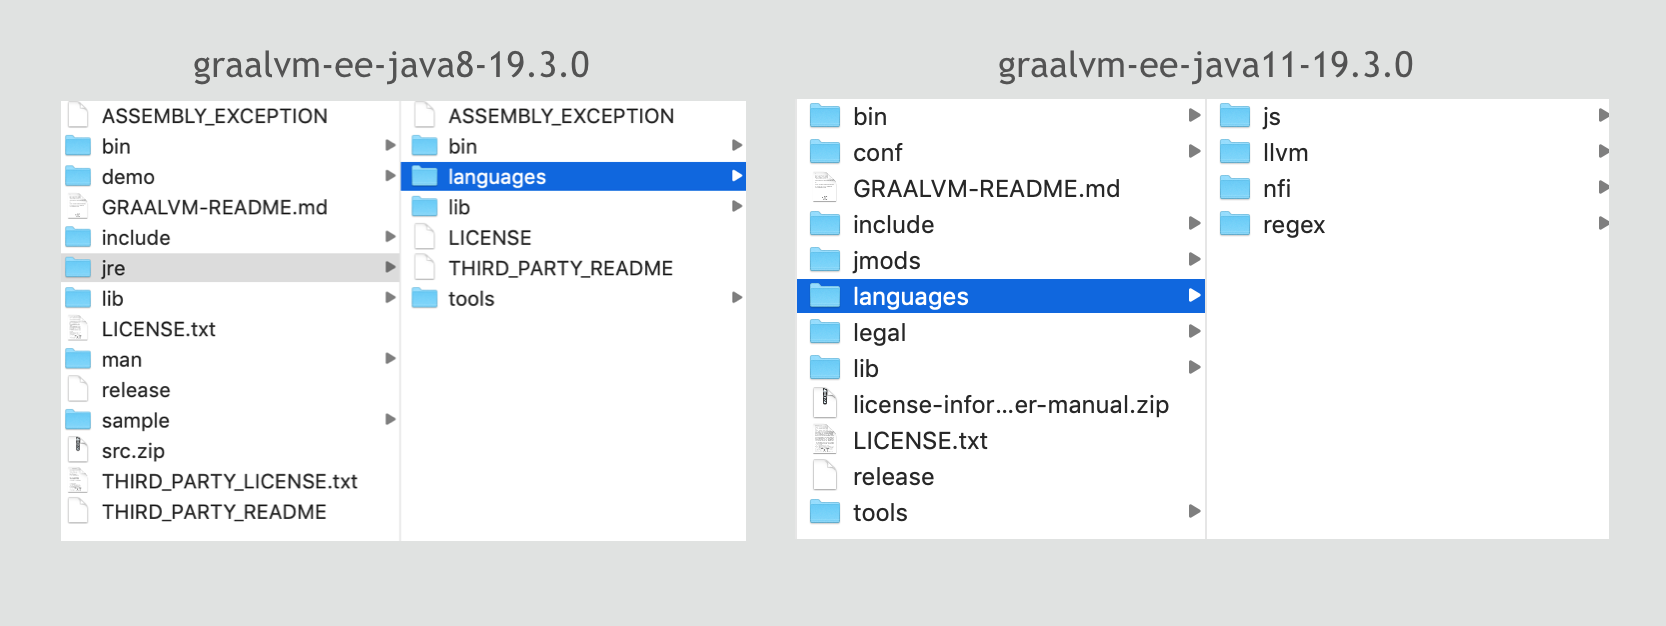 Difference in the location of the languages in JDK 8 and JDK 11 based GraalVM 19.3